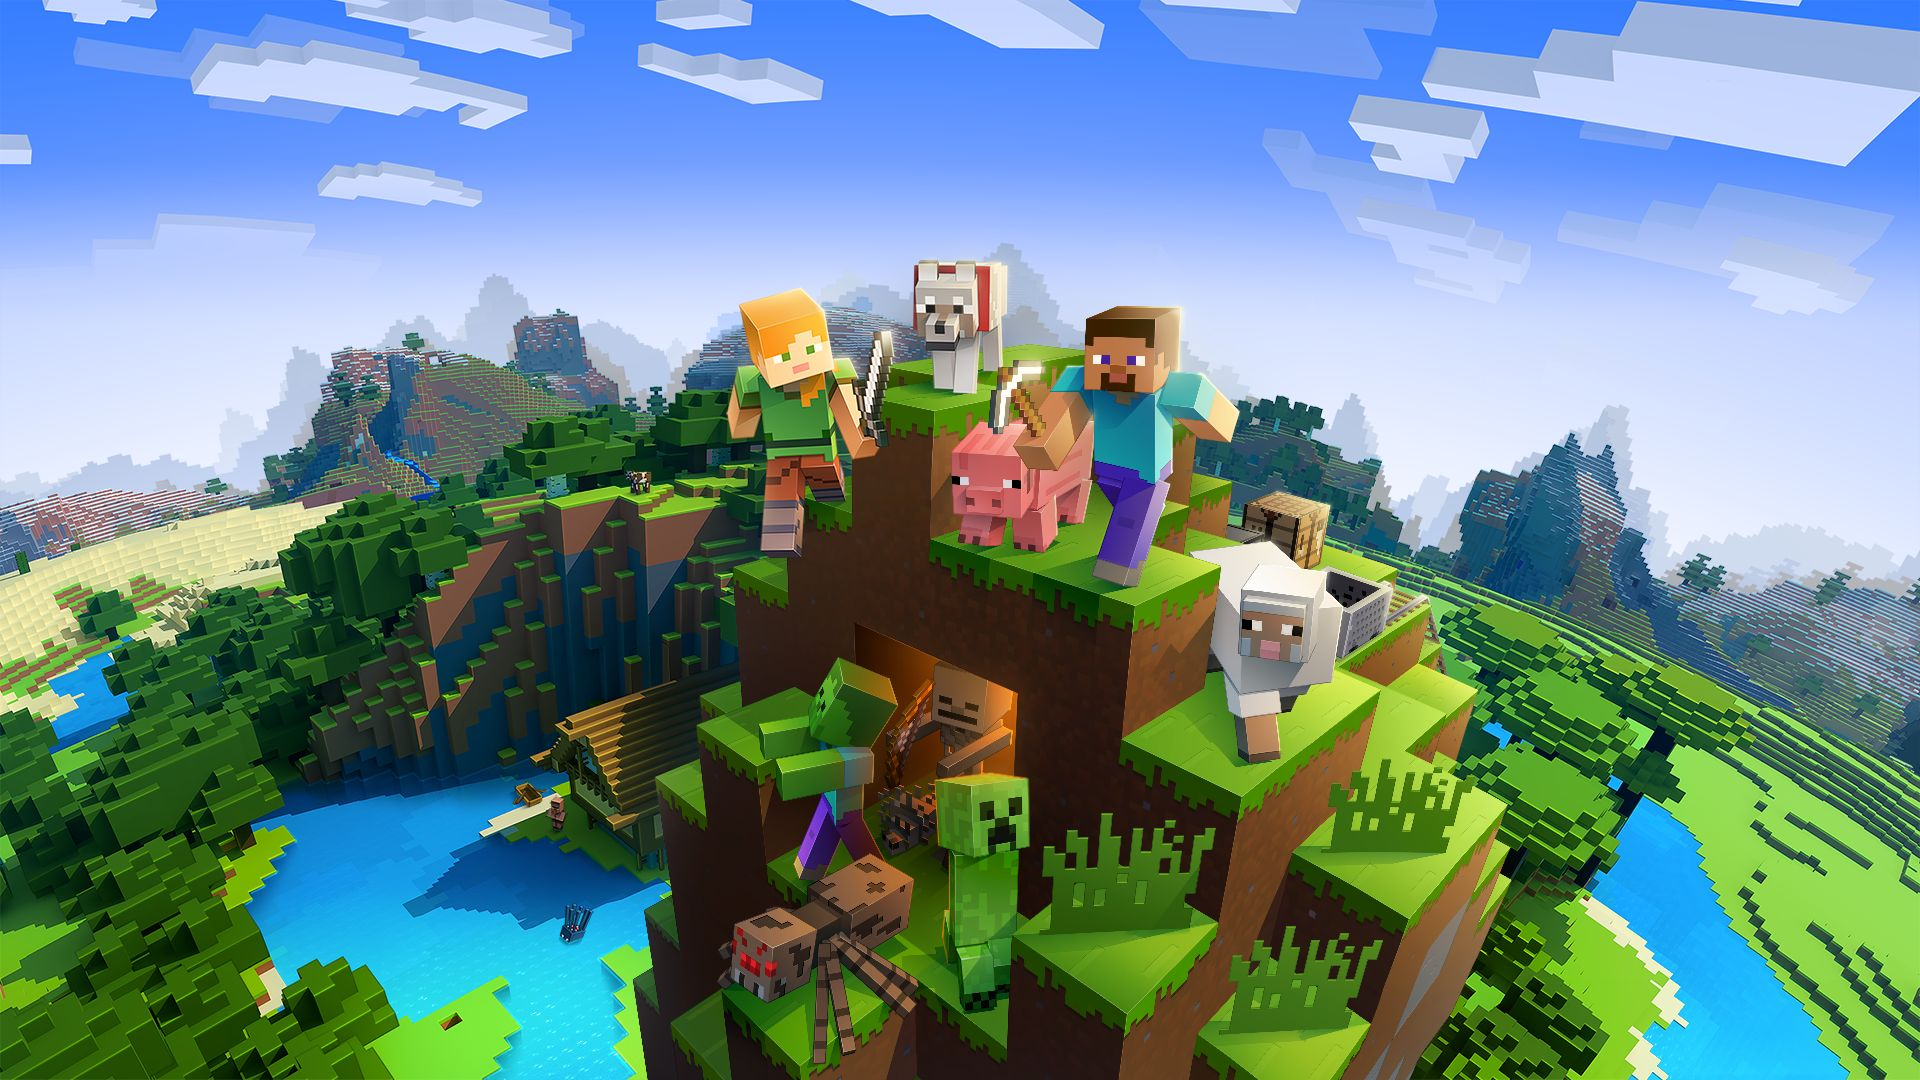 /5-best-minecraft-hacks-and-cheats-how-to-enable-and-use-them-4w4a37dp feature image